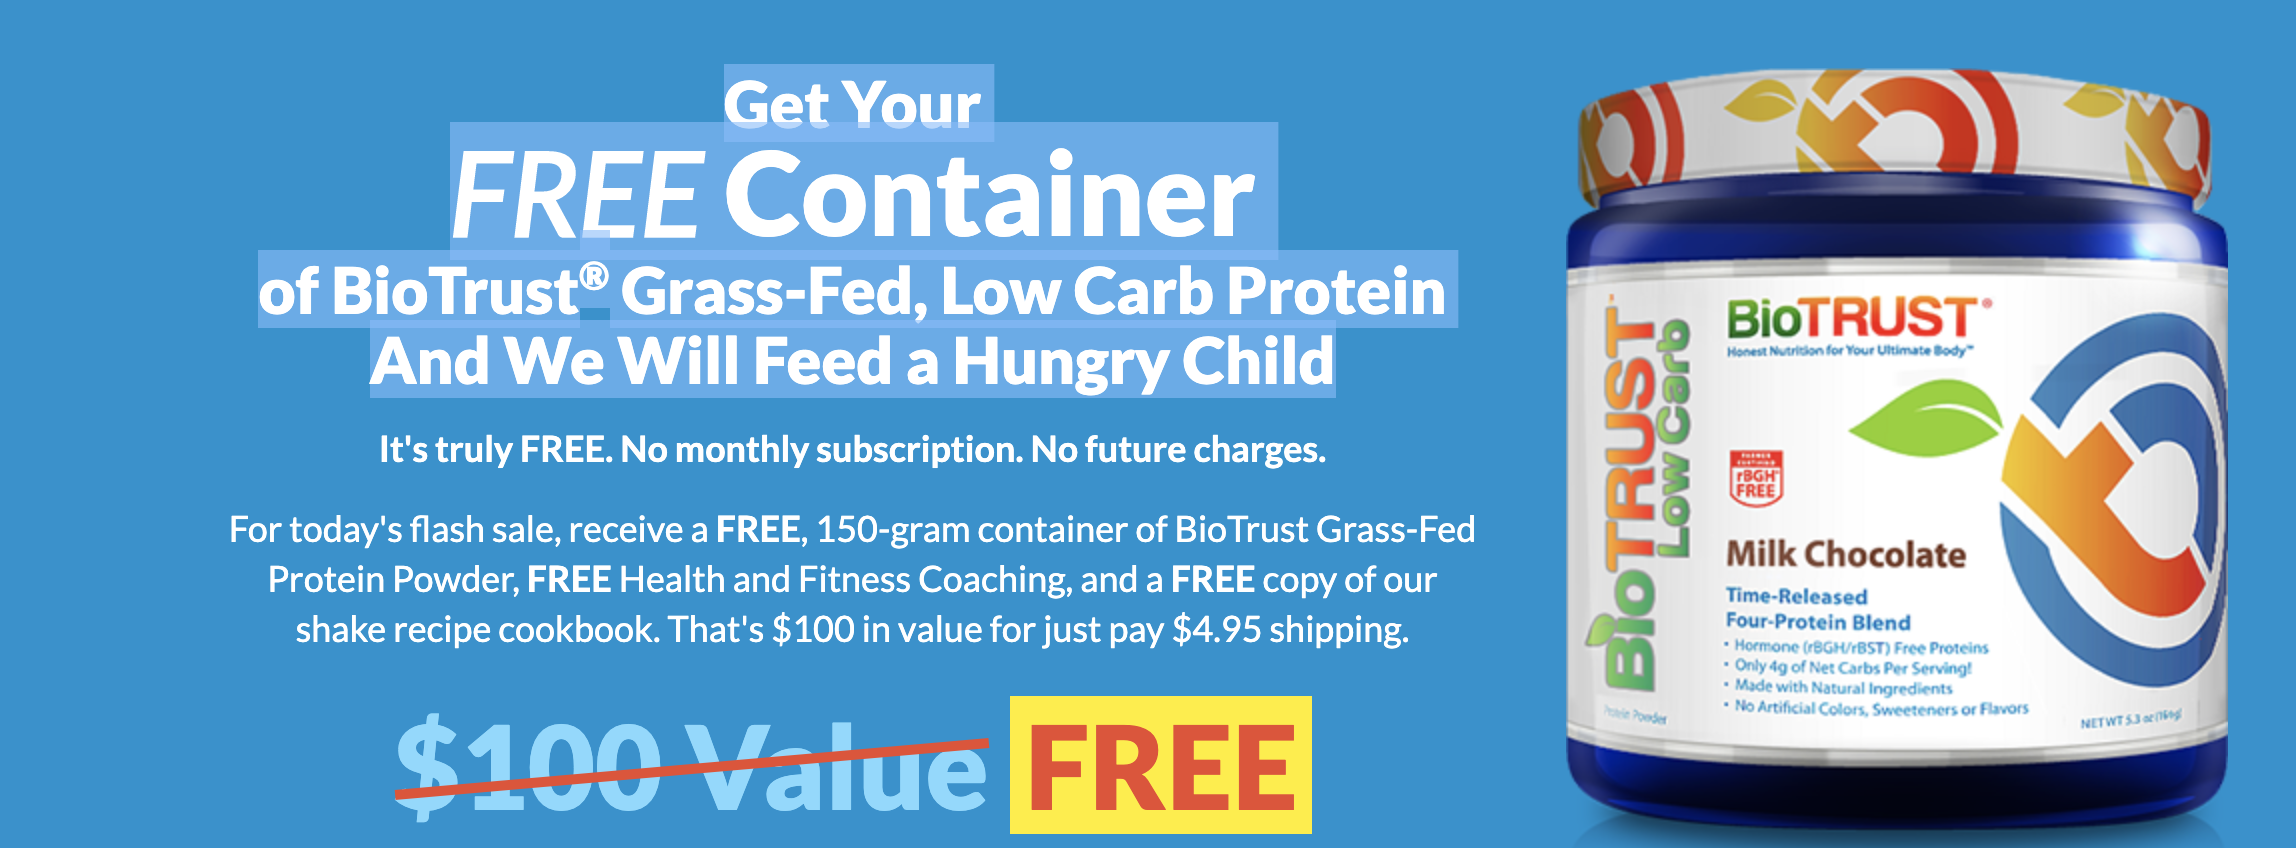 Get Your Free Container! Grass-Fed Low Calorie Protein ...#protein #grassfed #free #fitness #bodybui...